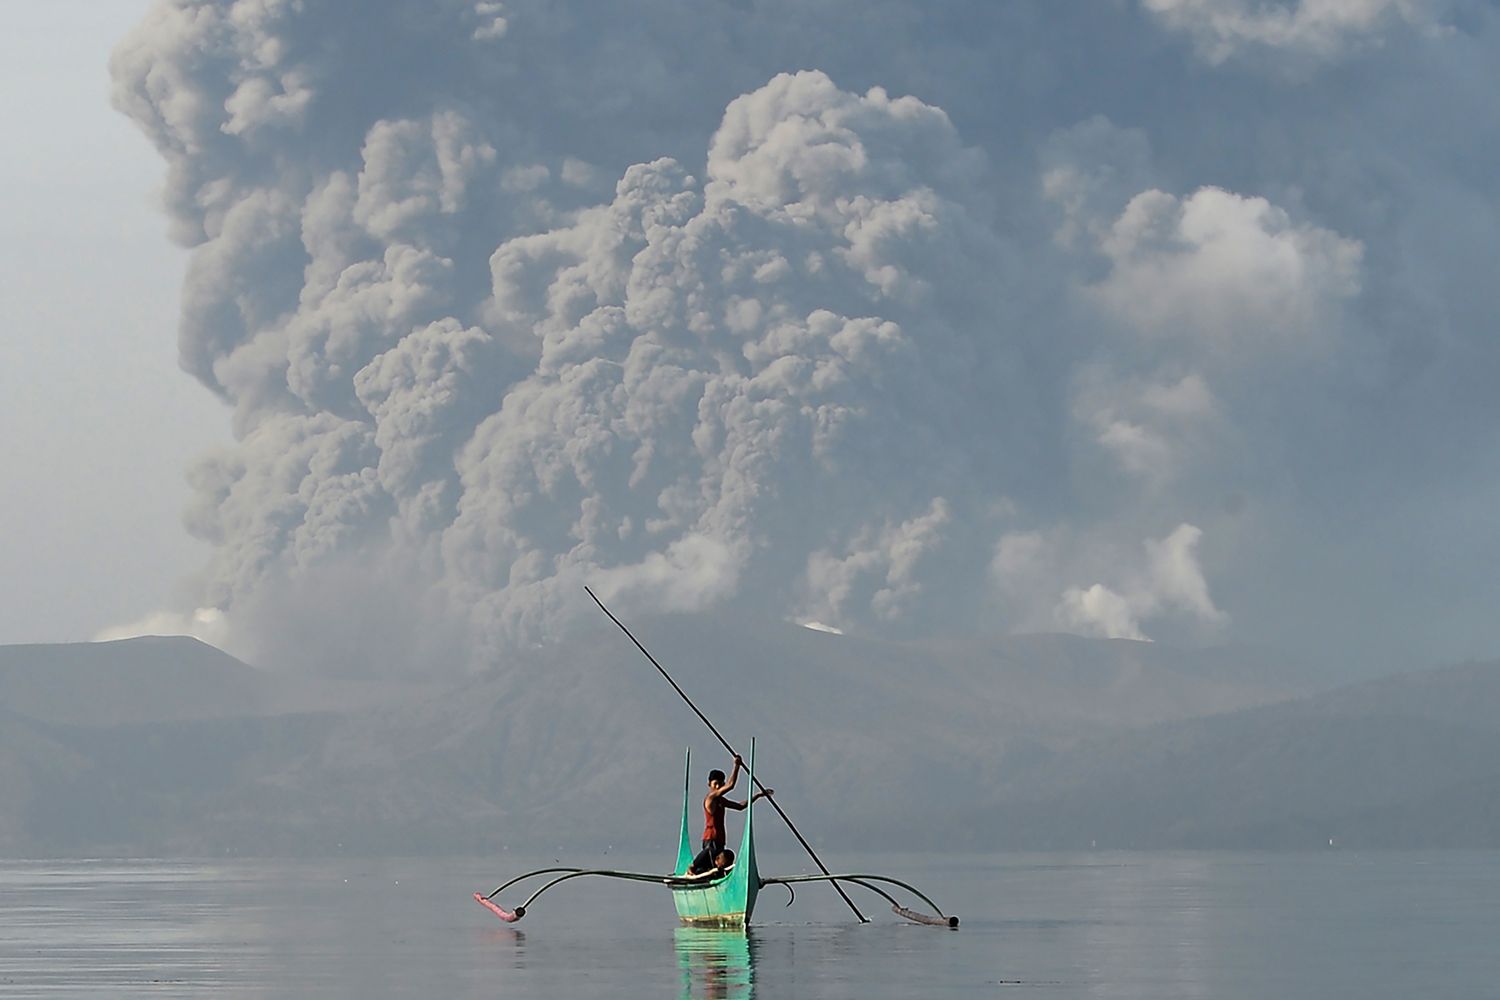 A Filipino youth rides an outrigger canoe while the Taal volcano spews ash as seen from Tanauan town in Batangas province, south of Manila, on Jan. 13. TED ALJIBE/AFP via Getty Images